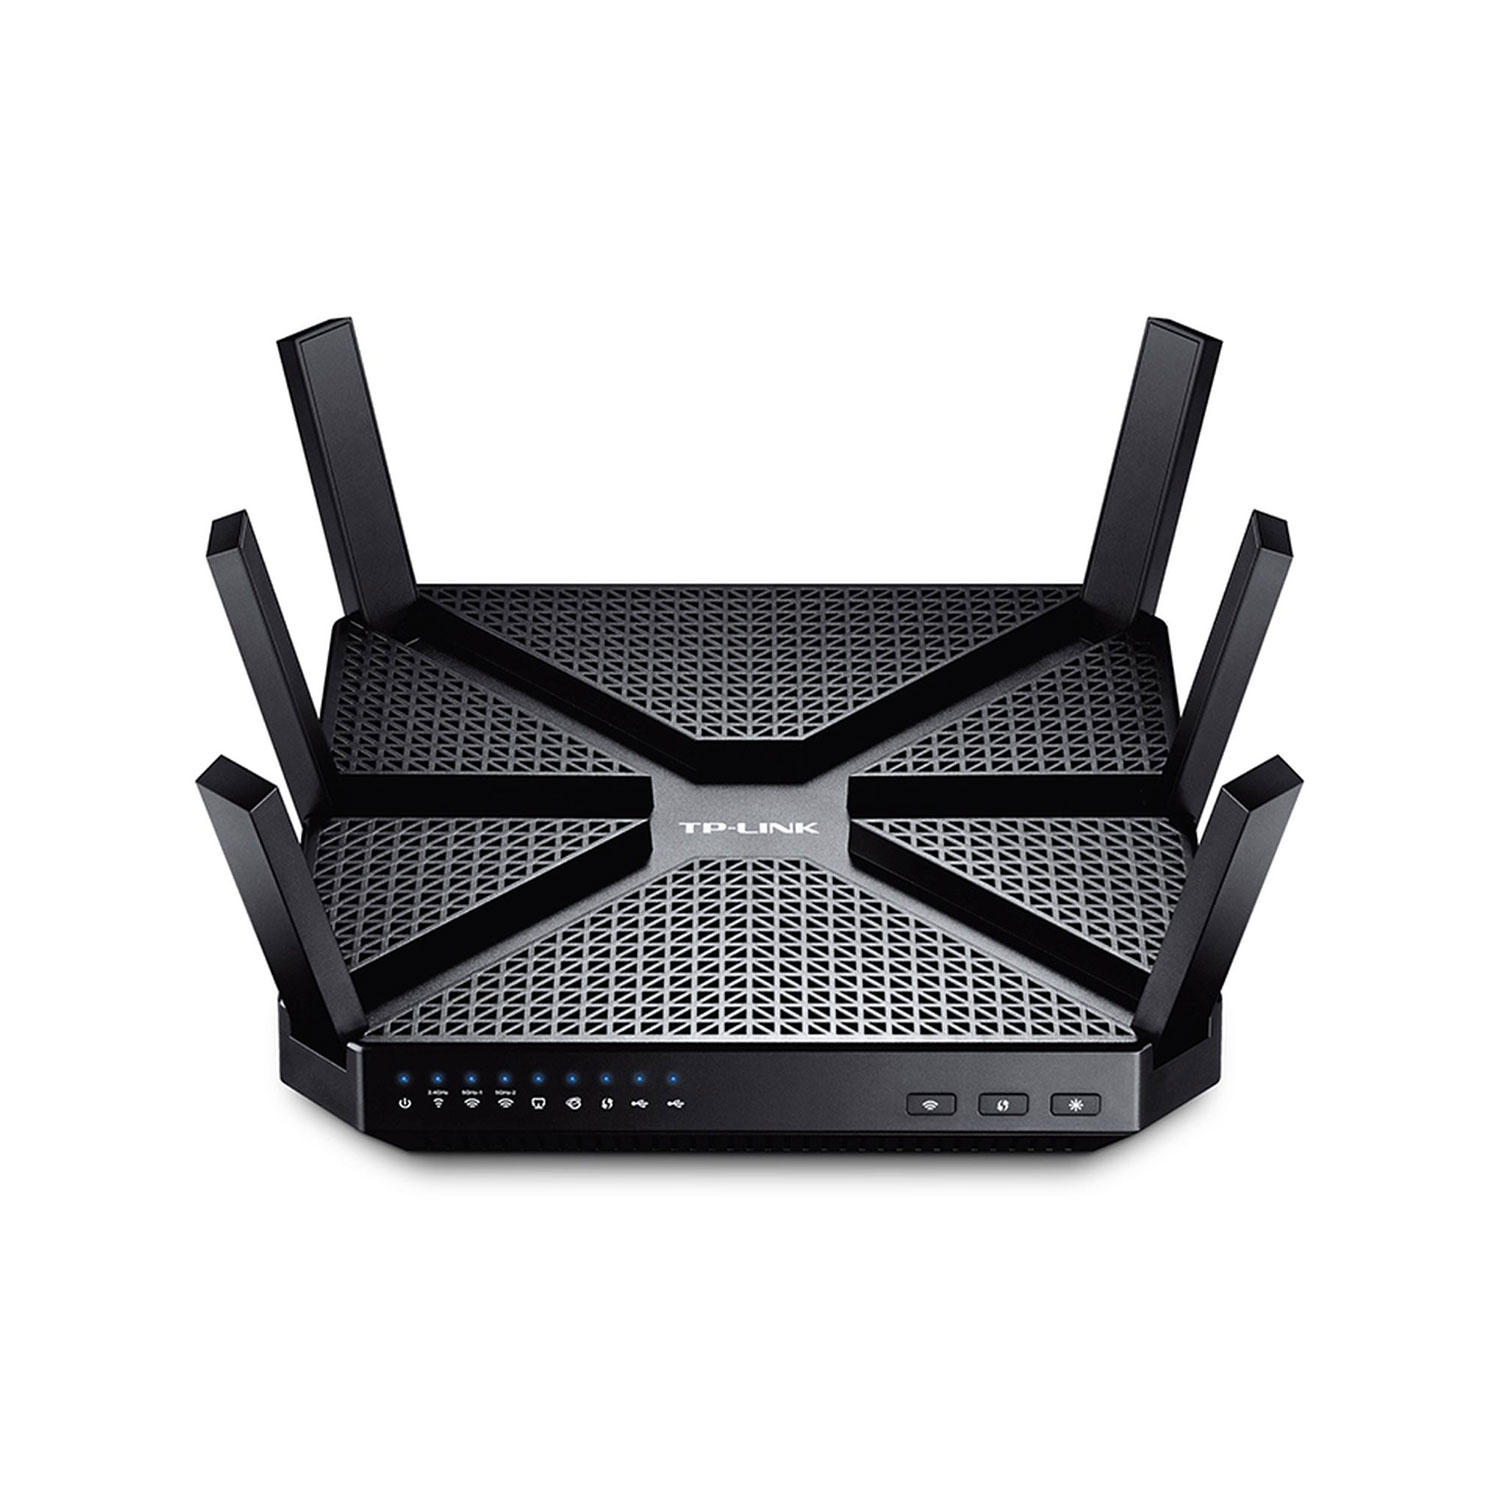 TP-Link AC3000 Wireless Tri-Band Gigabit Router